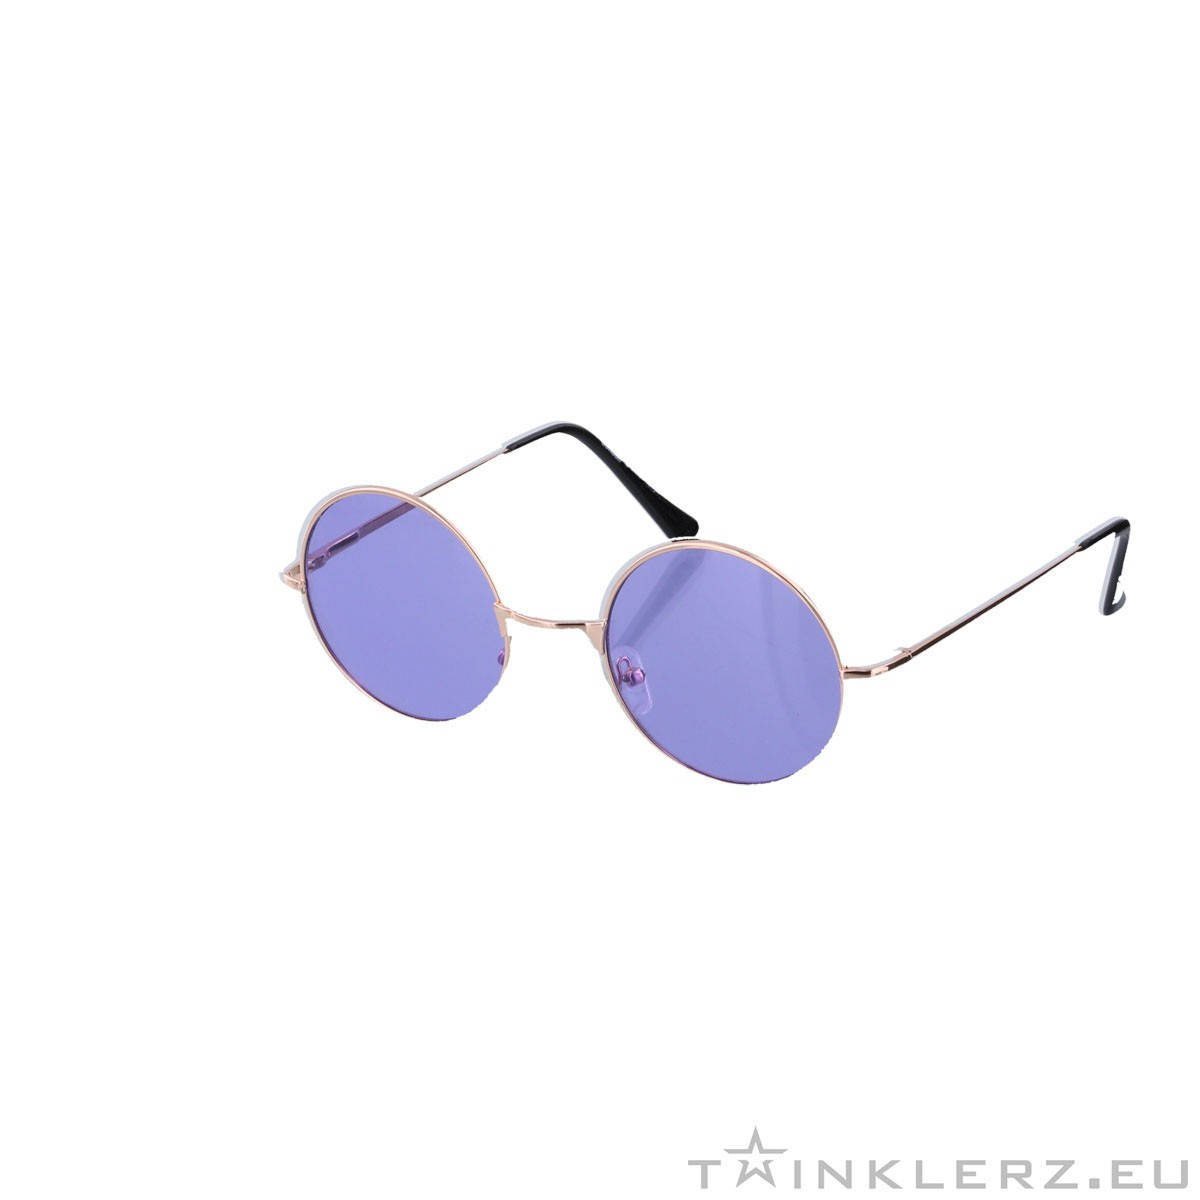 5707c458719614 Small round golden sunglasses - purple colored glasses